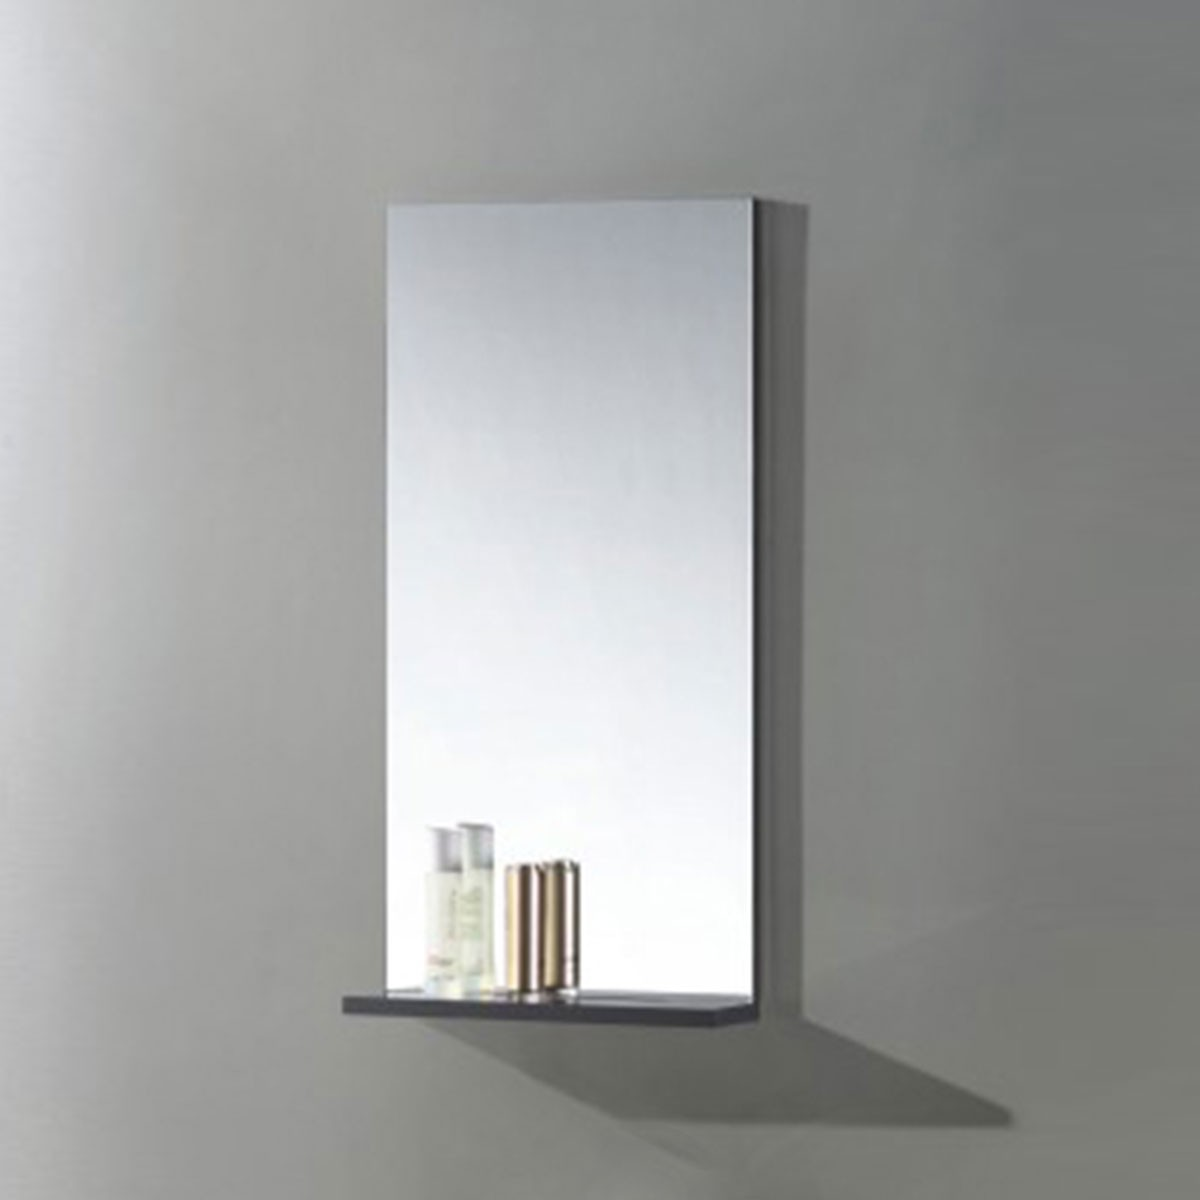 16 x 32 In. Bathroom Mirror with Shelf (MS400C-M)